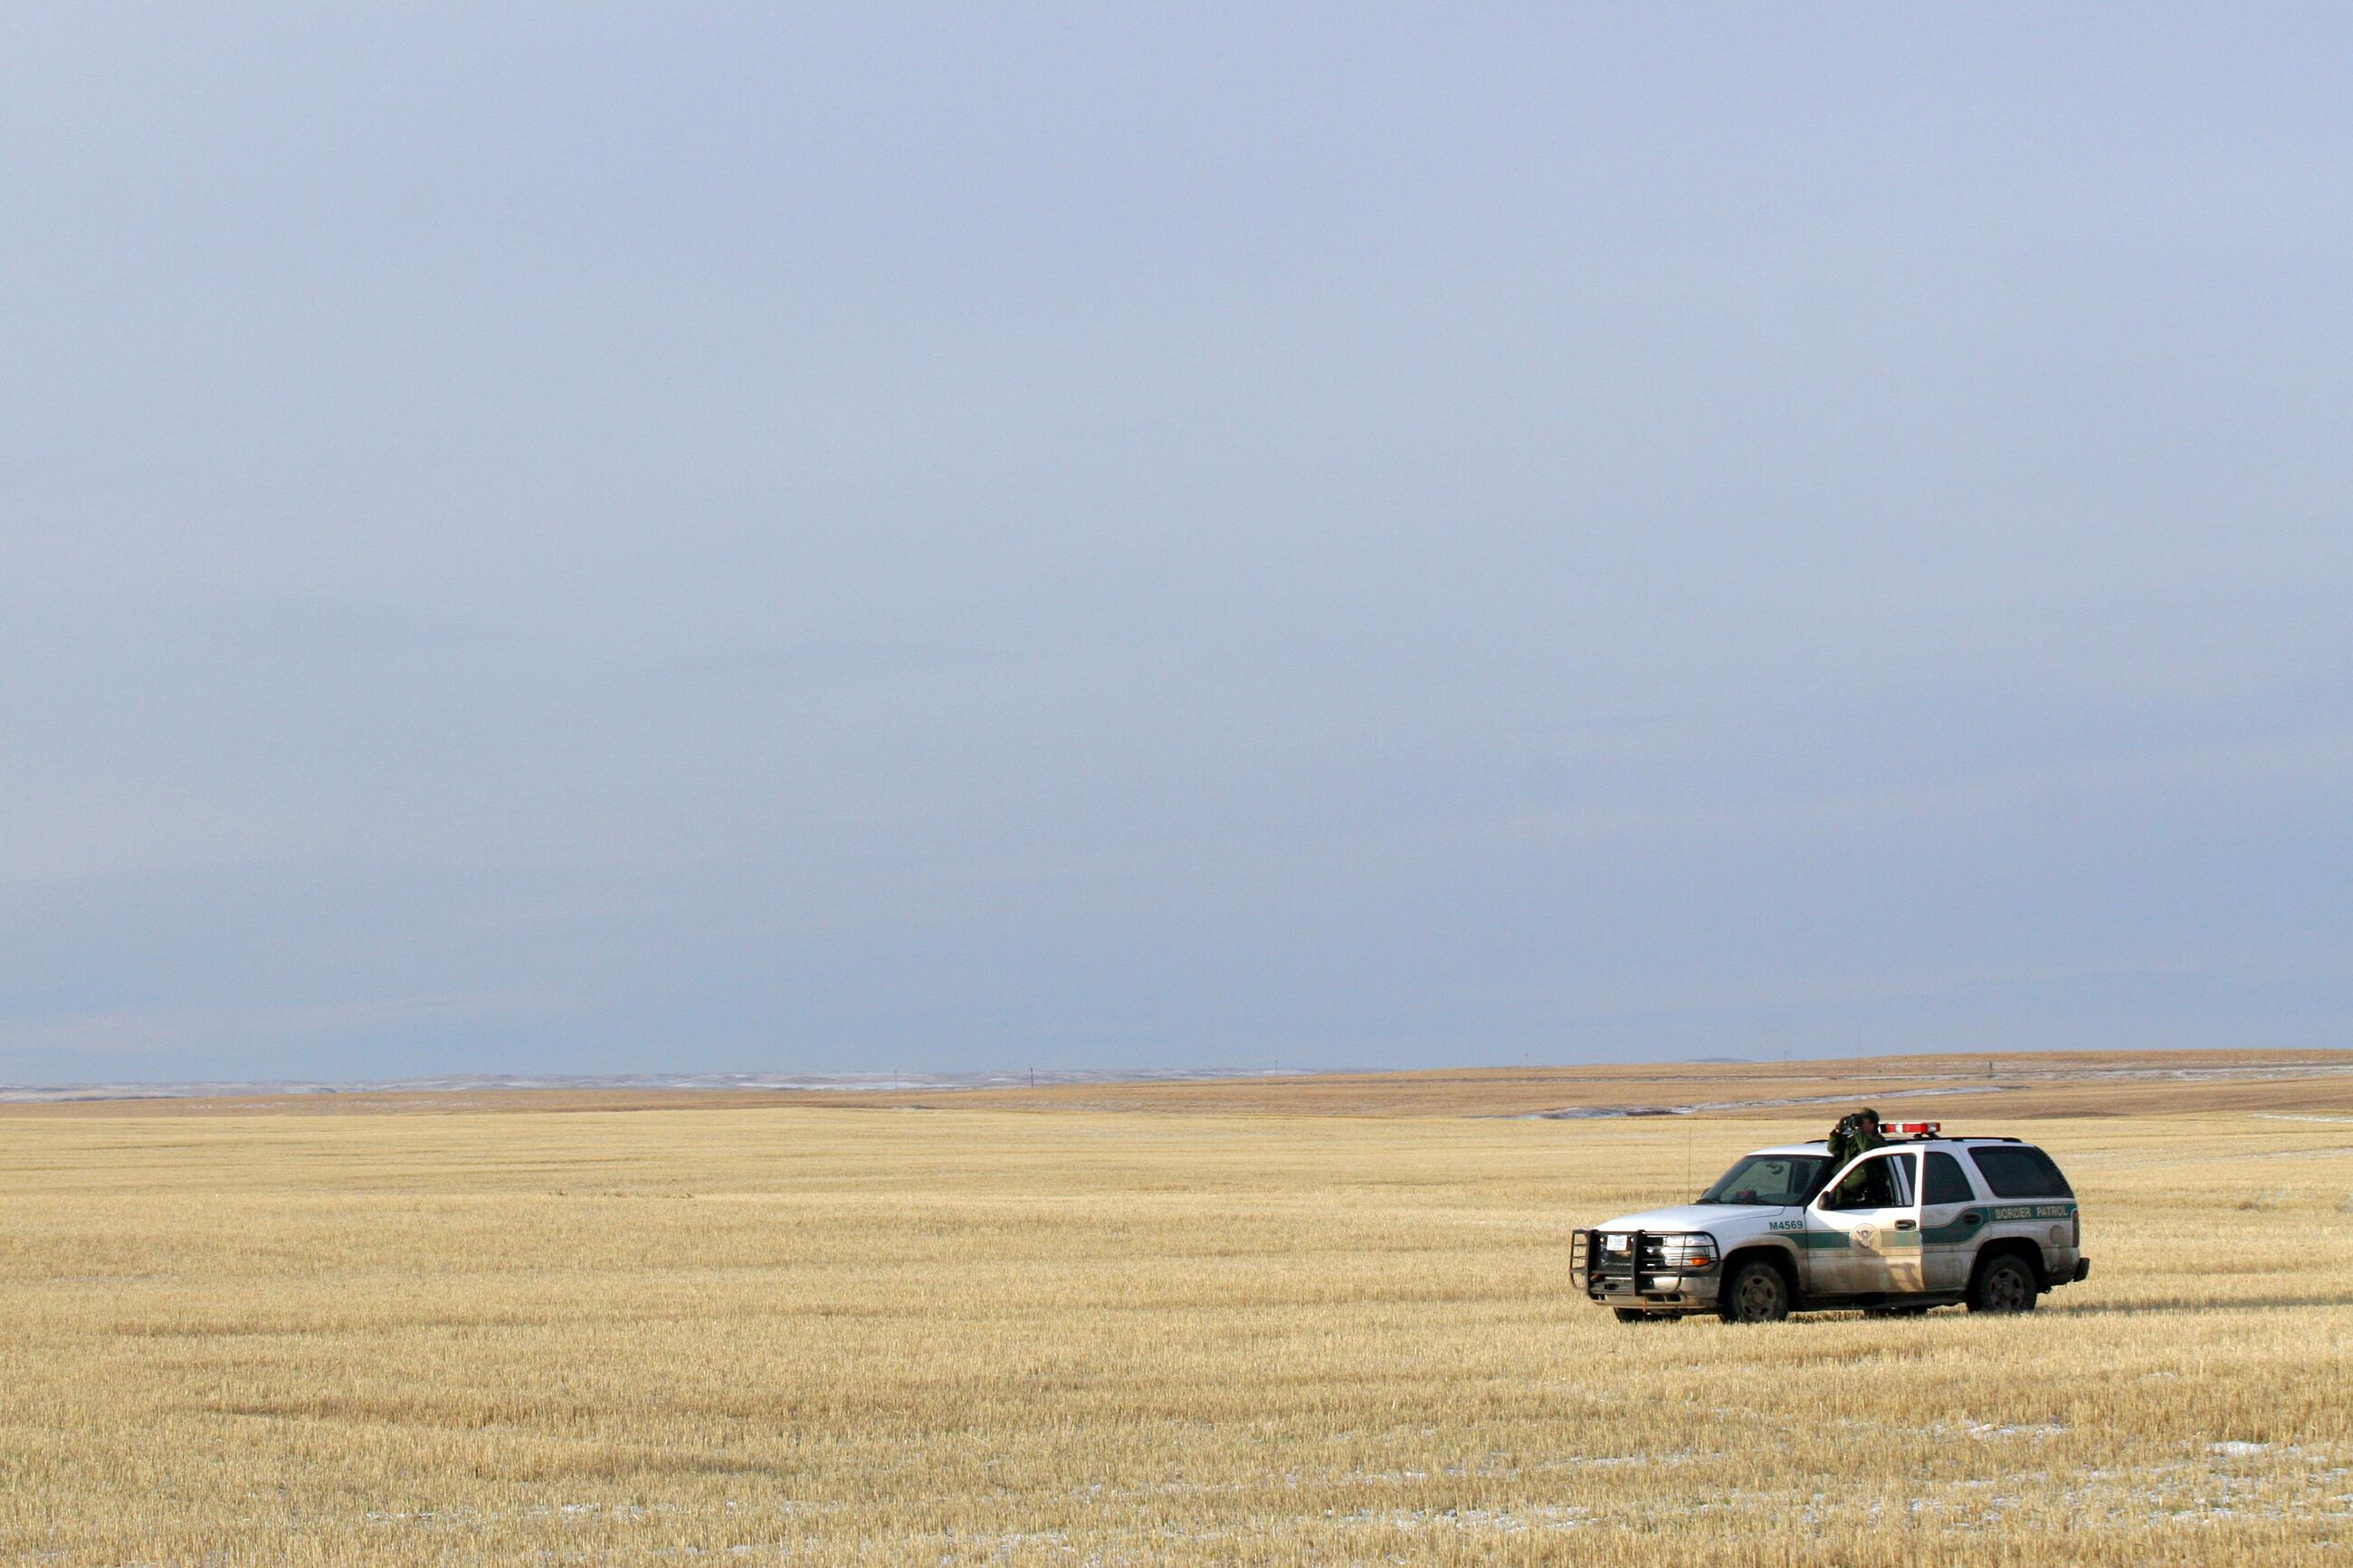 CBP Border Patrol agent monitors US/Canadian border near Sweet Grass Montana.